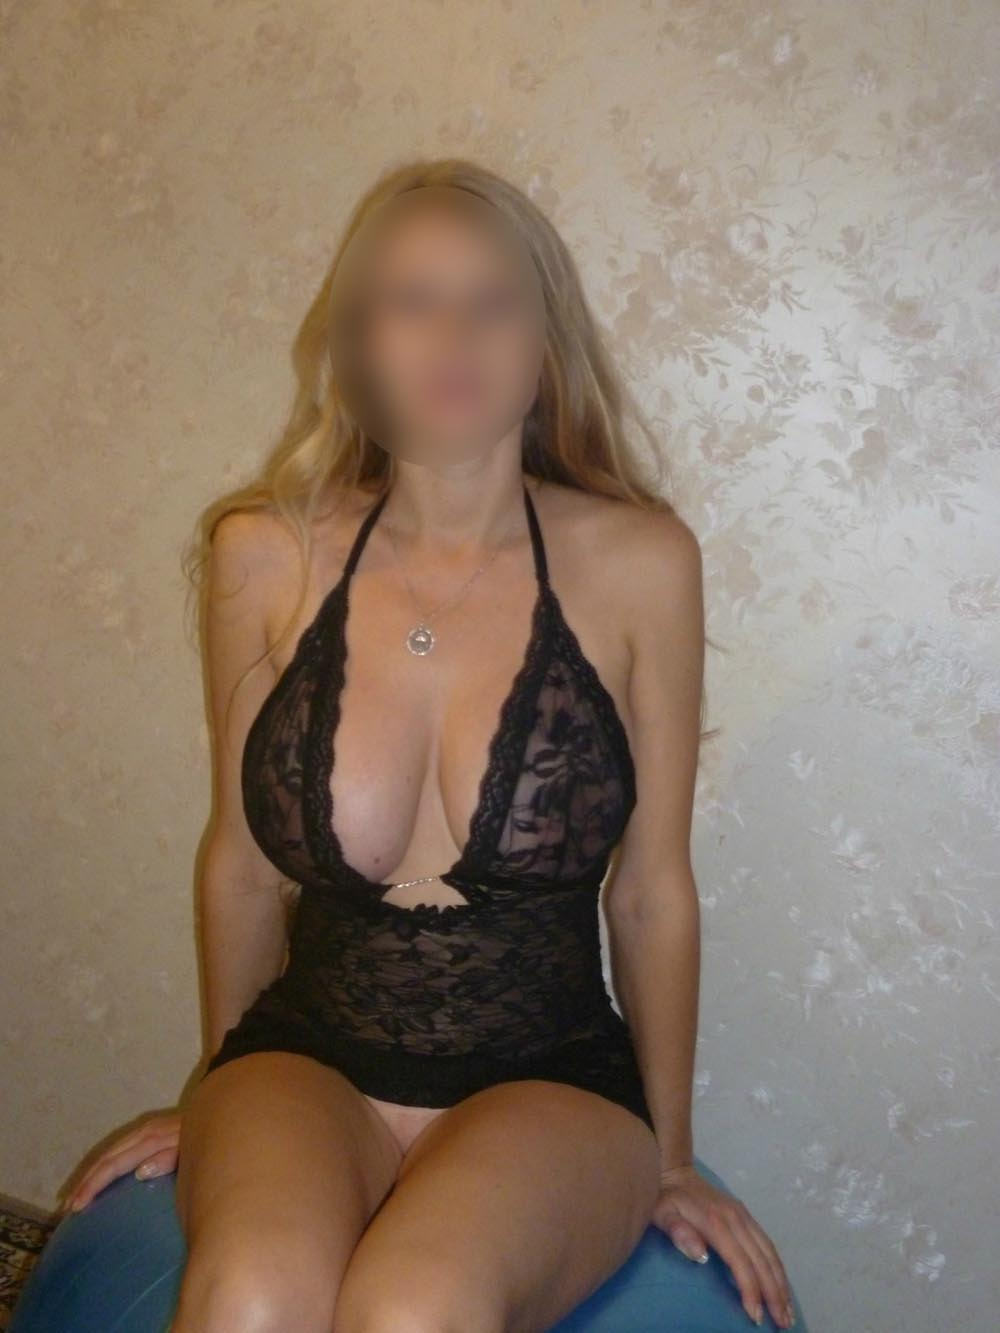 40 plus milf from bristol uk rides dildo on holiday 10